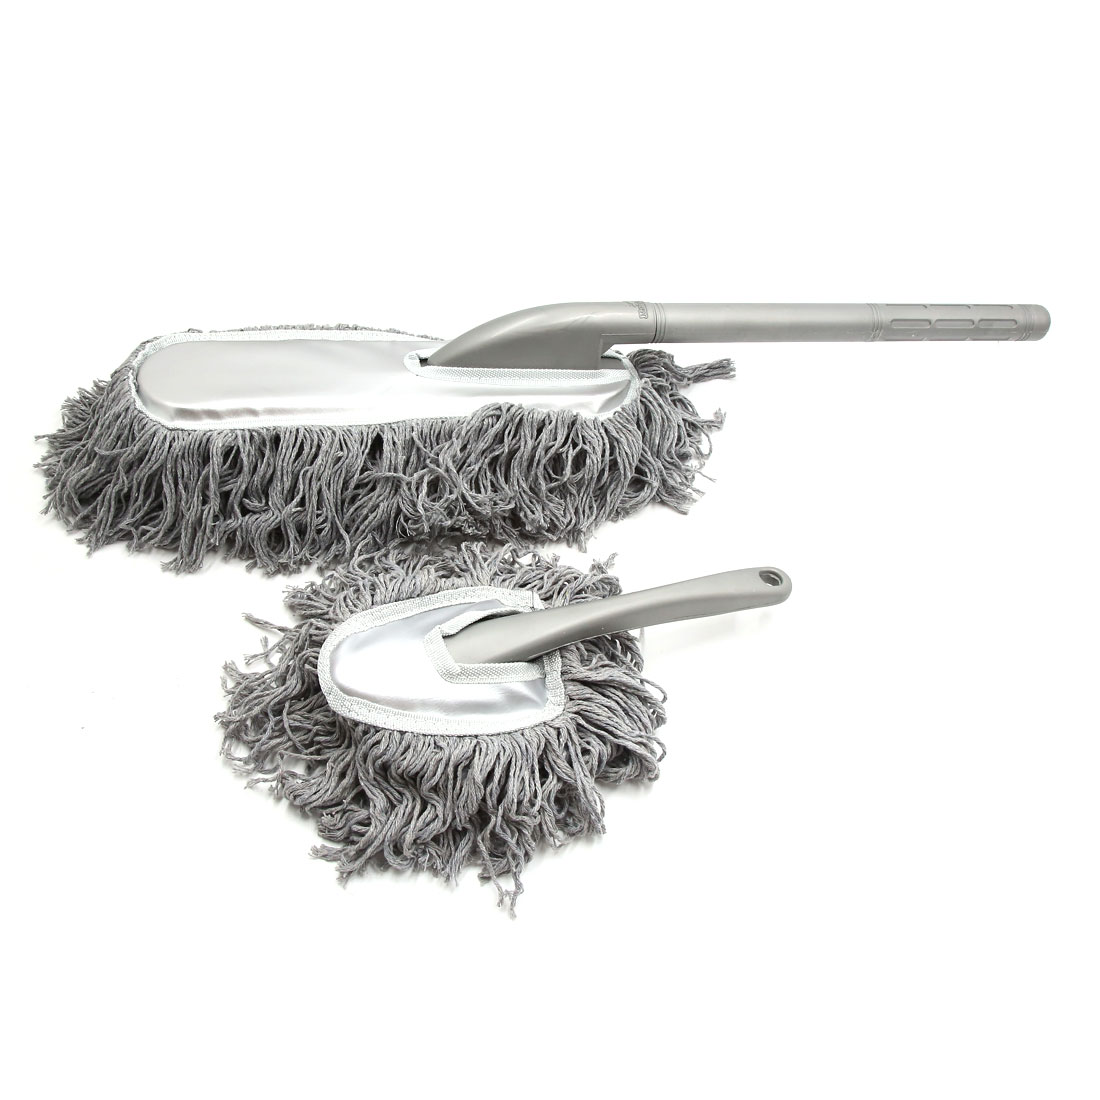 Gray Cotton Thead Foam Handle Car Cleaning Brush Duster Dust Wax Mop Tool